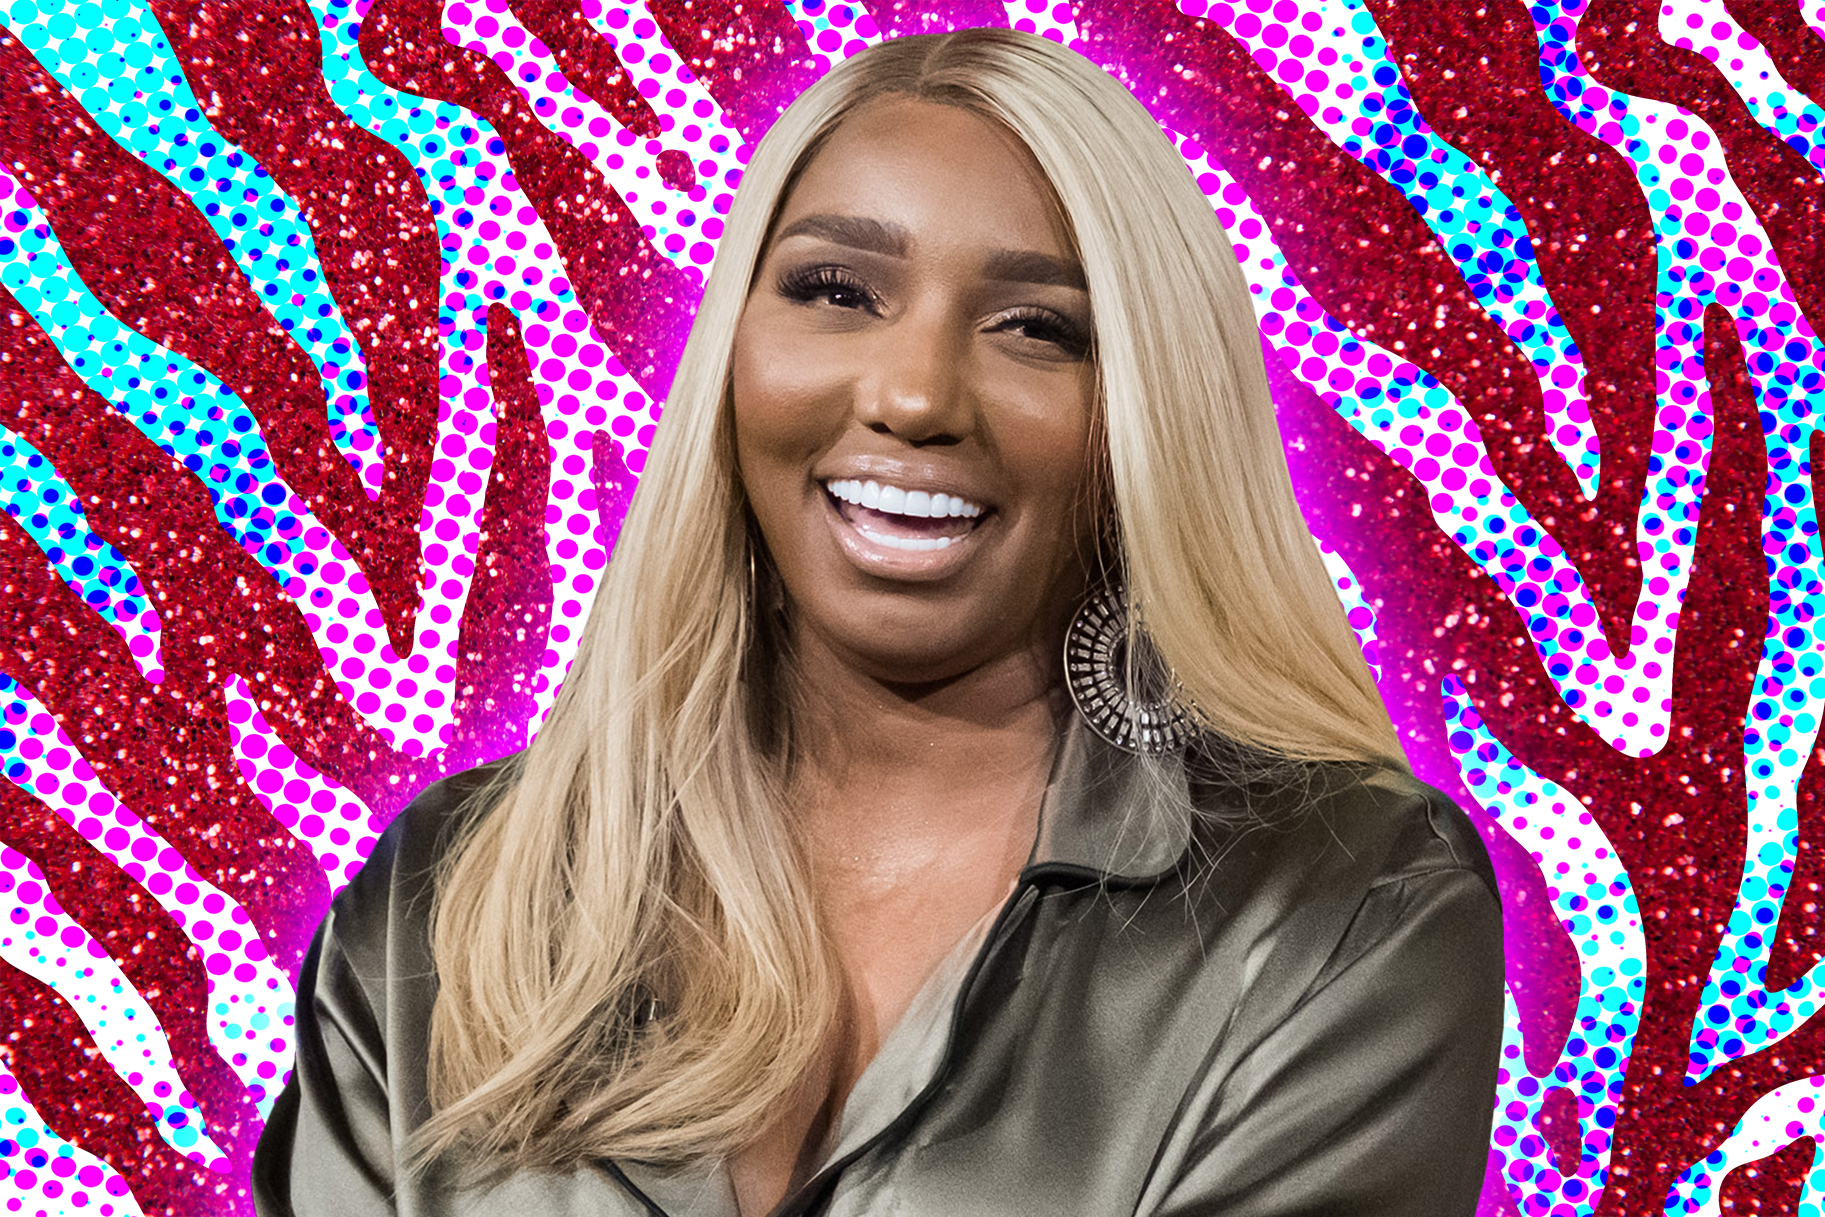 NeNe Leakes Shares A Few Words Following The Most Recent RHOA Episode In Which She Was Not Featured - Her Fans Are Fuming